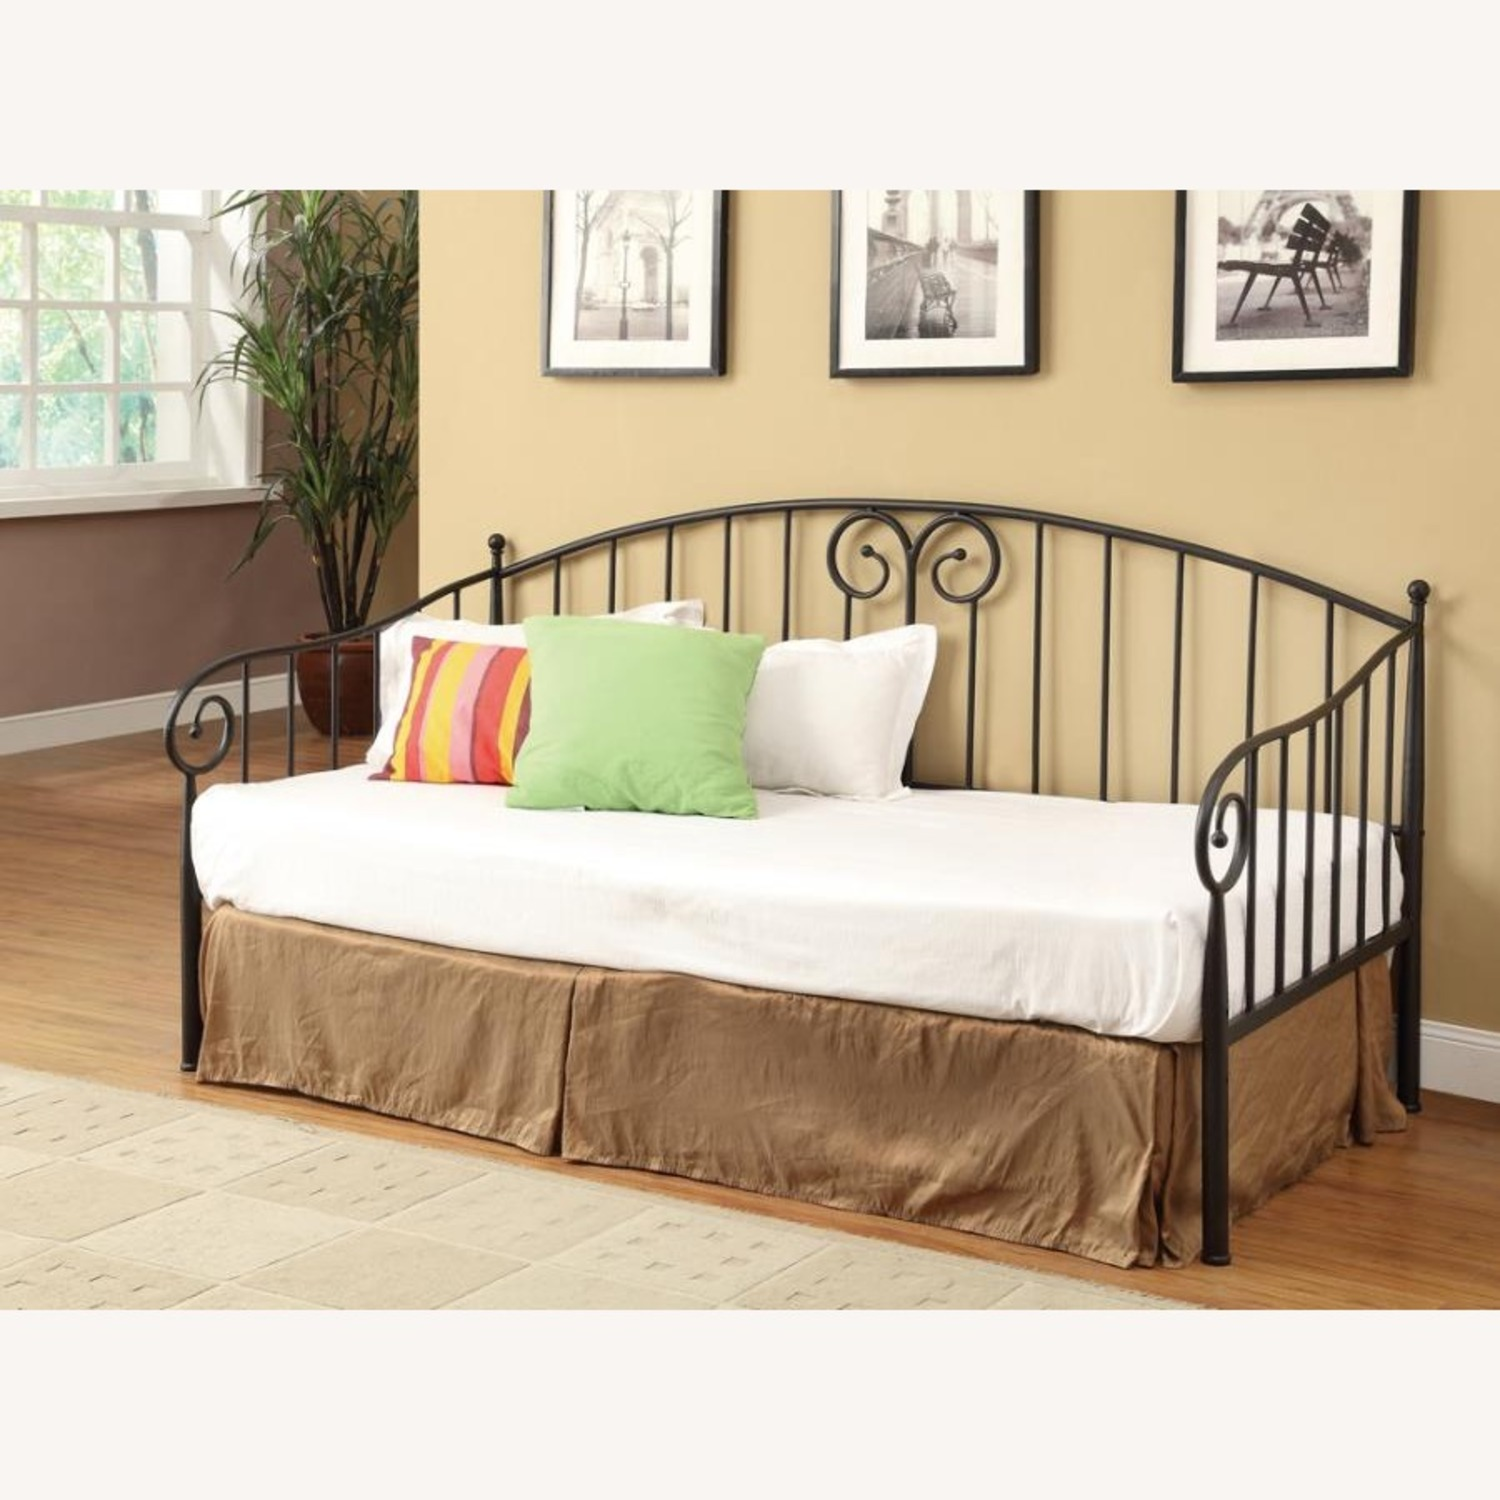 Twin Daybed In Black Finish W/ Sloped Rail Design - image-2